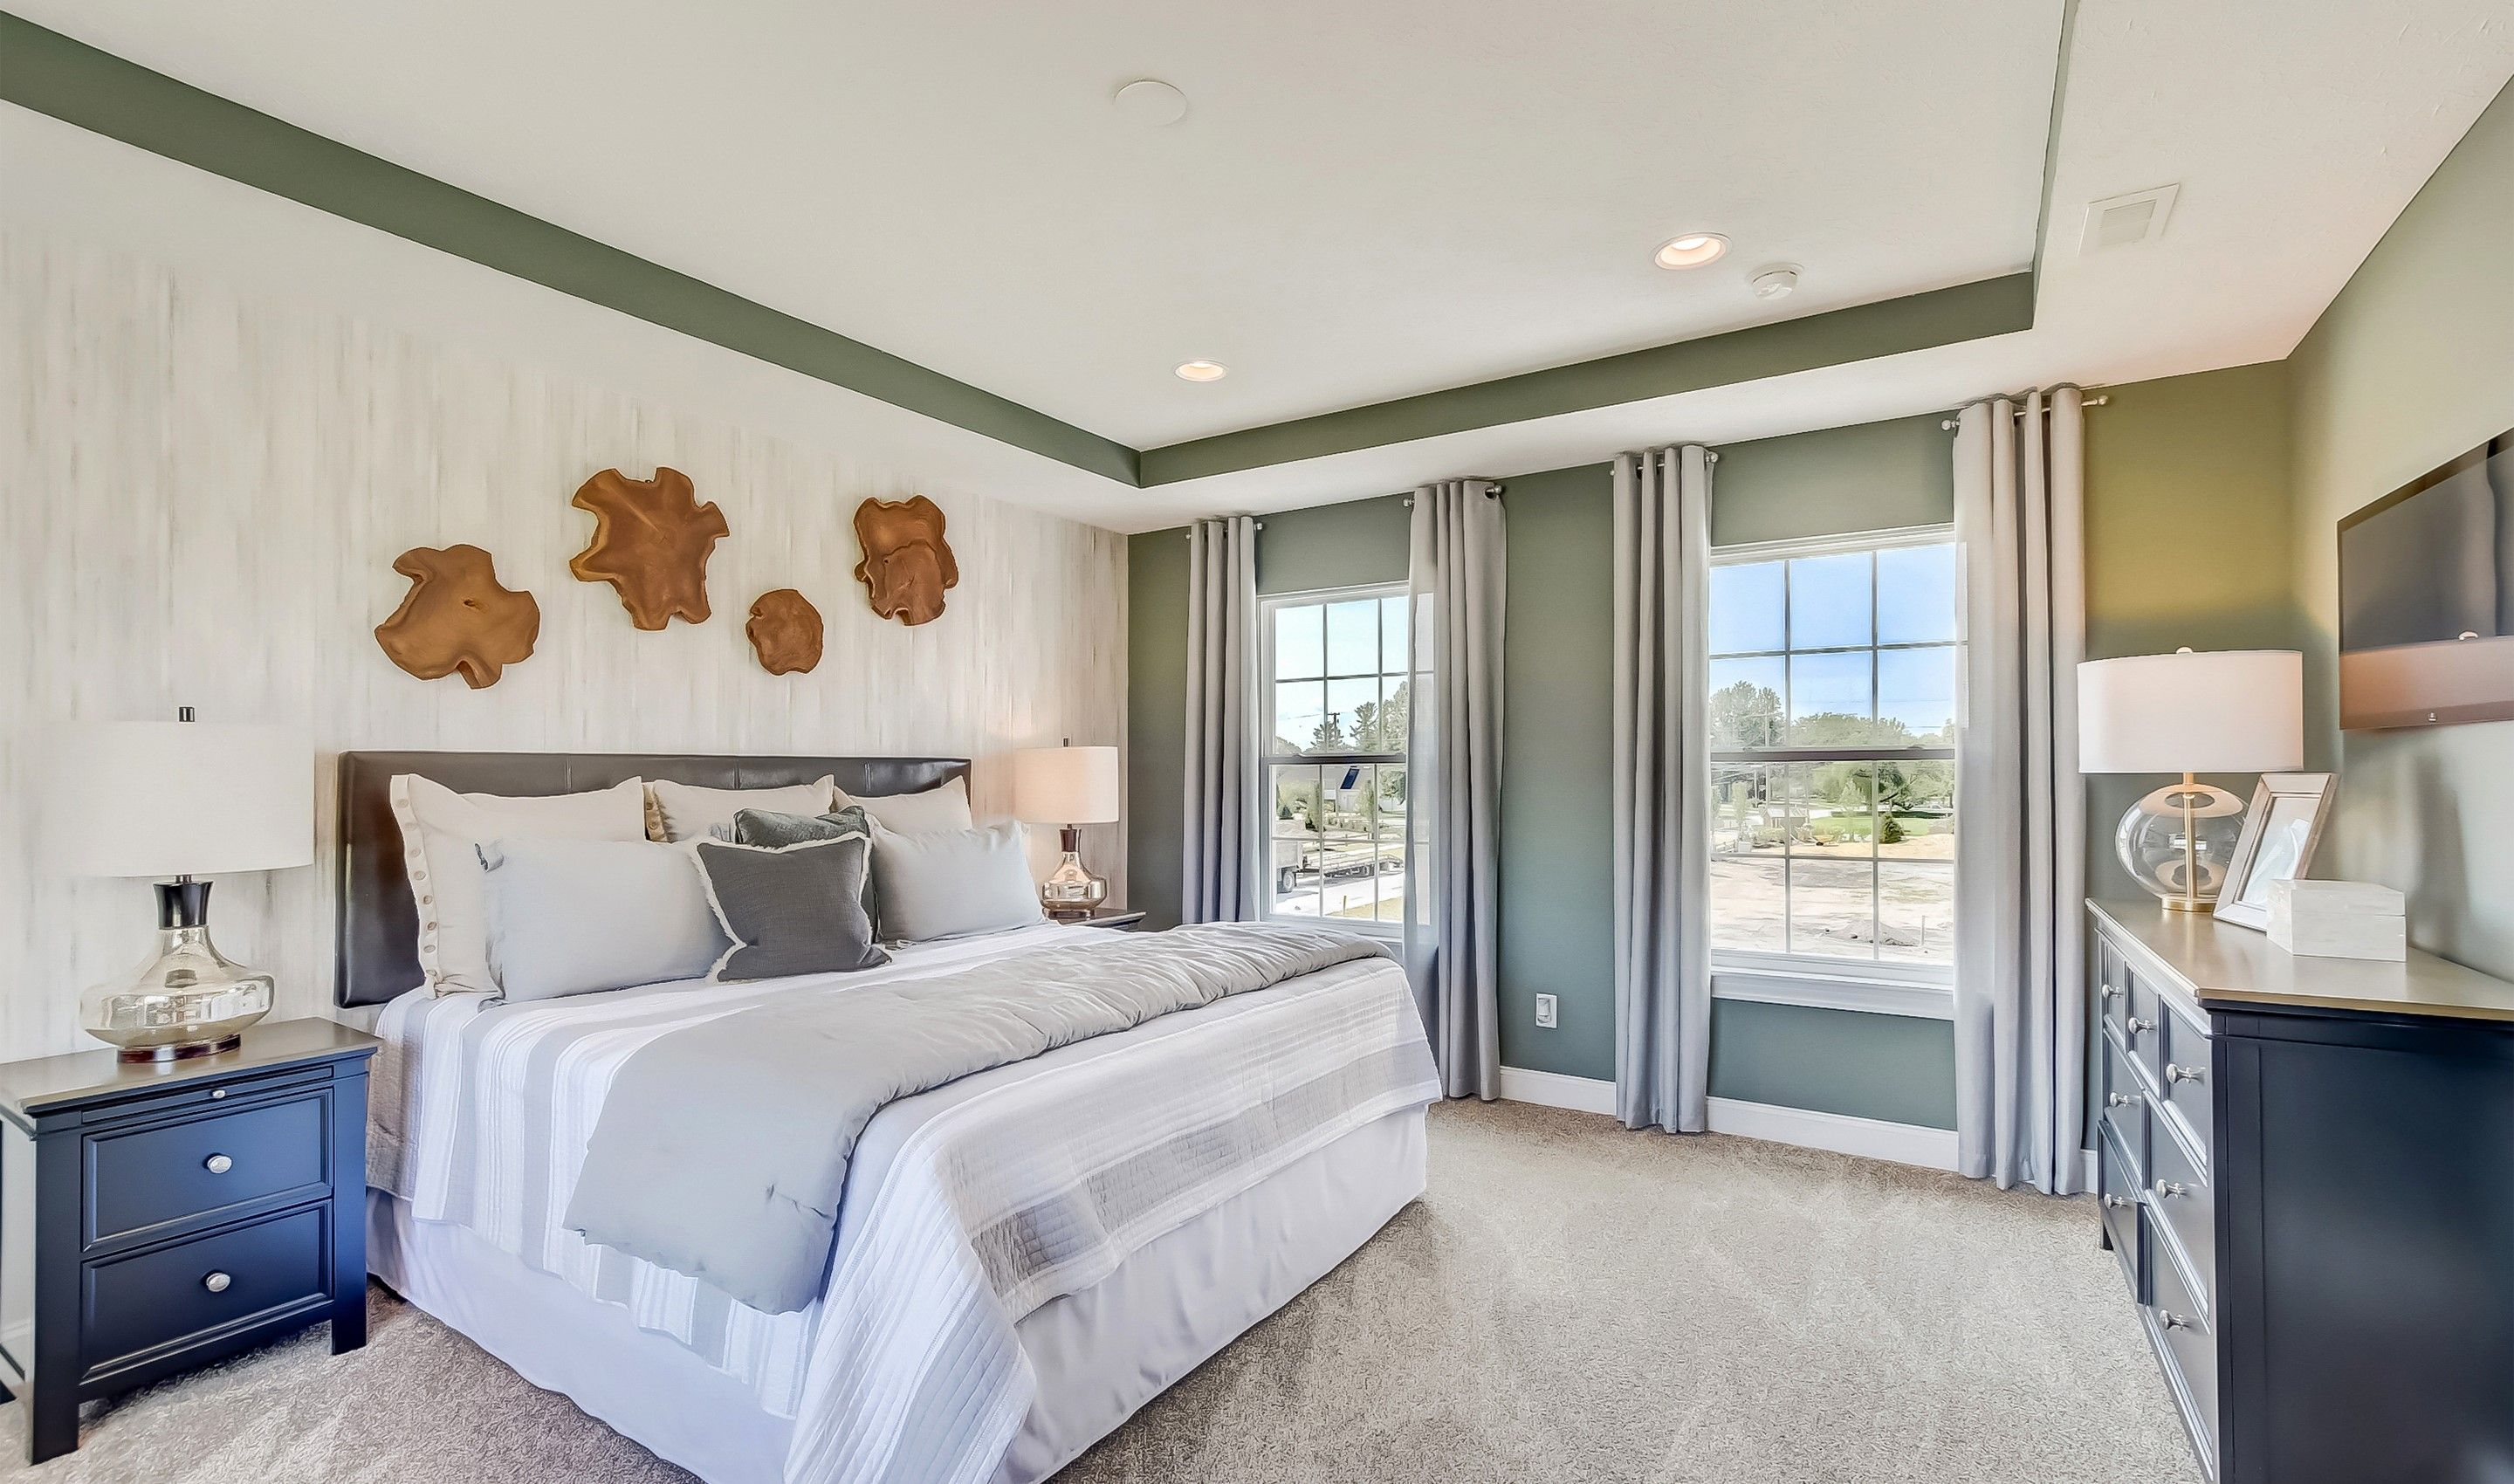 Bedroom featured in the Waterford II By K. Hovnanian® Homes in Cleveland, OH